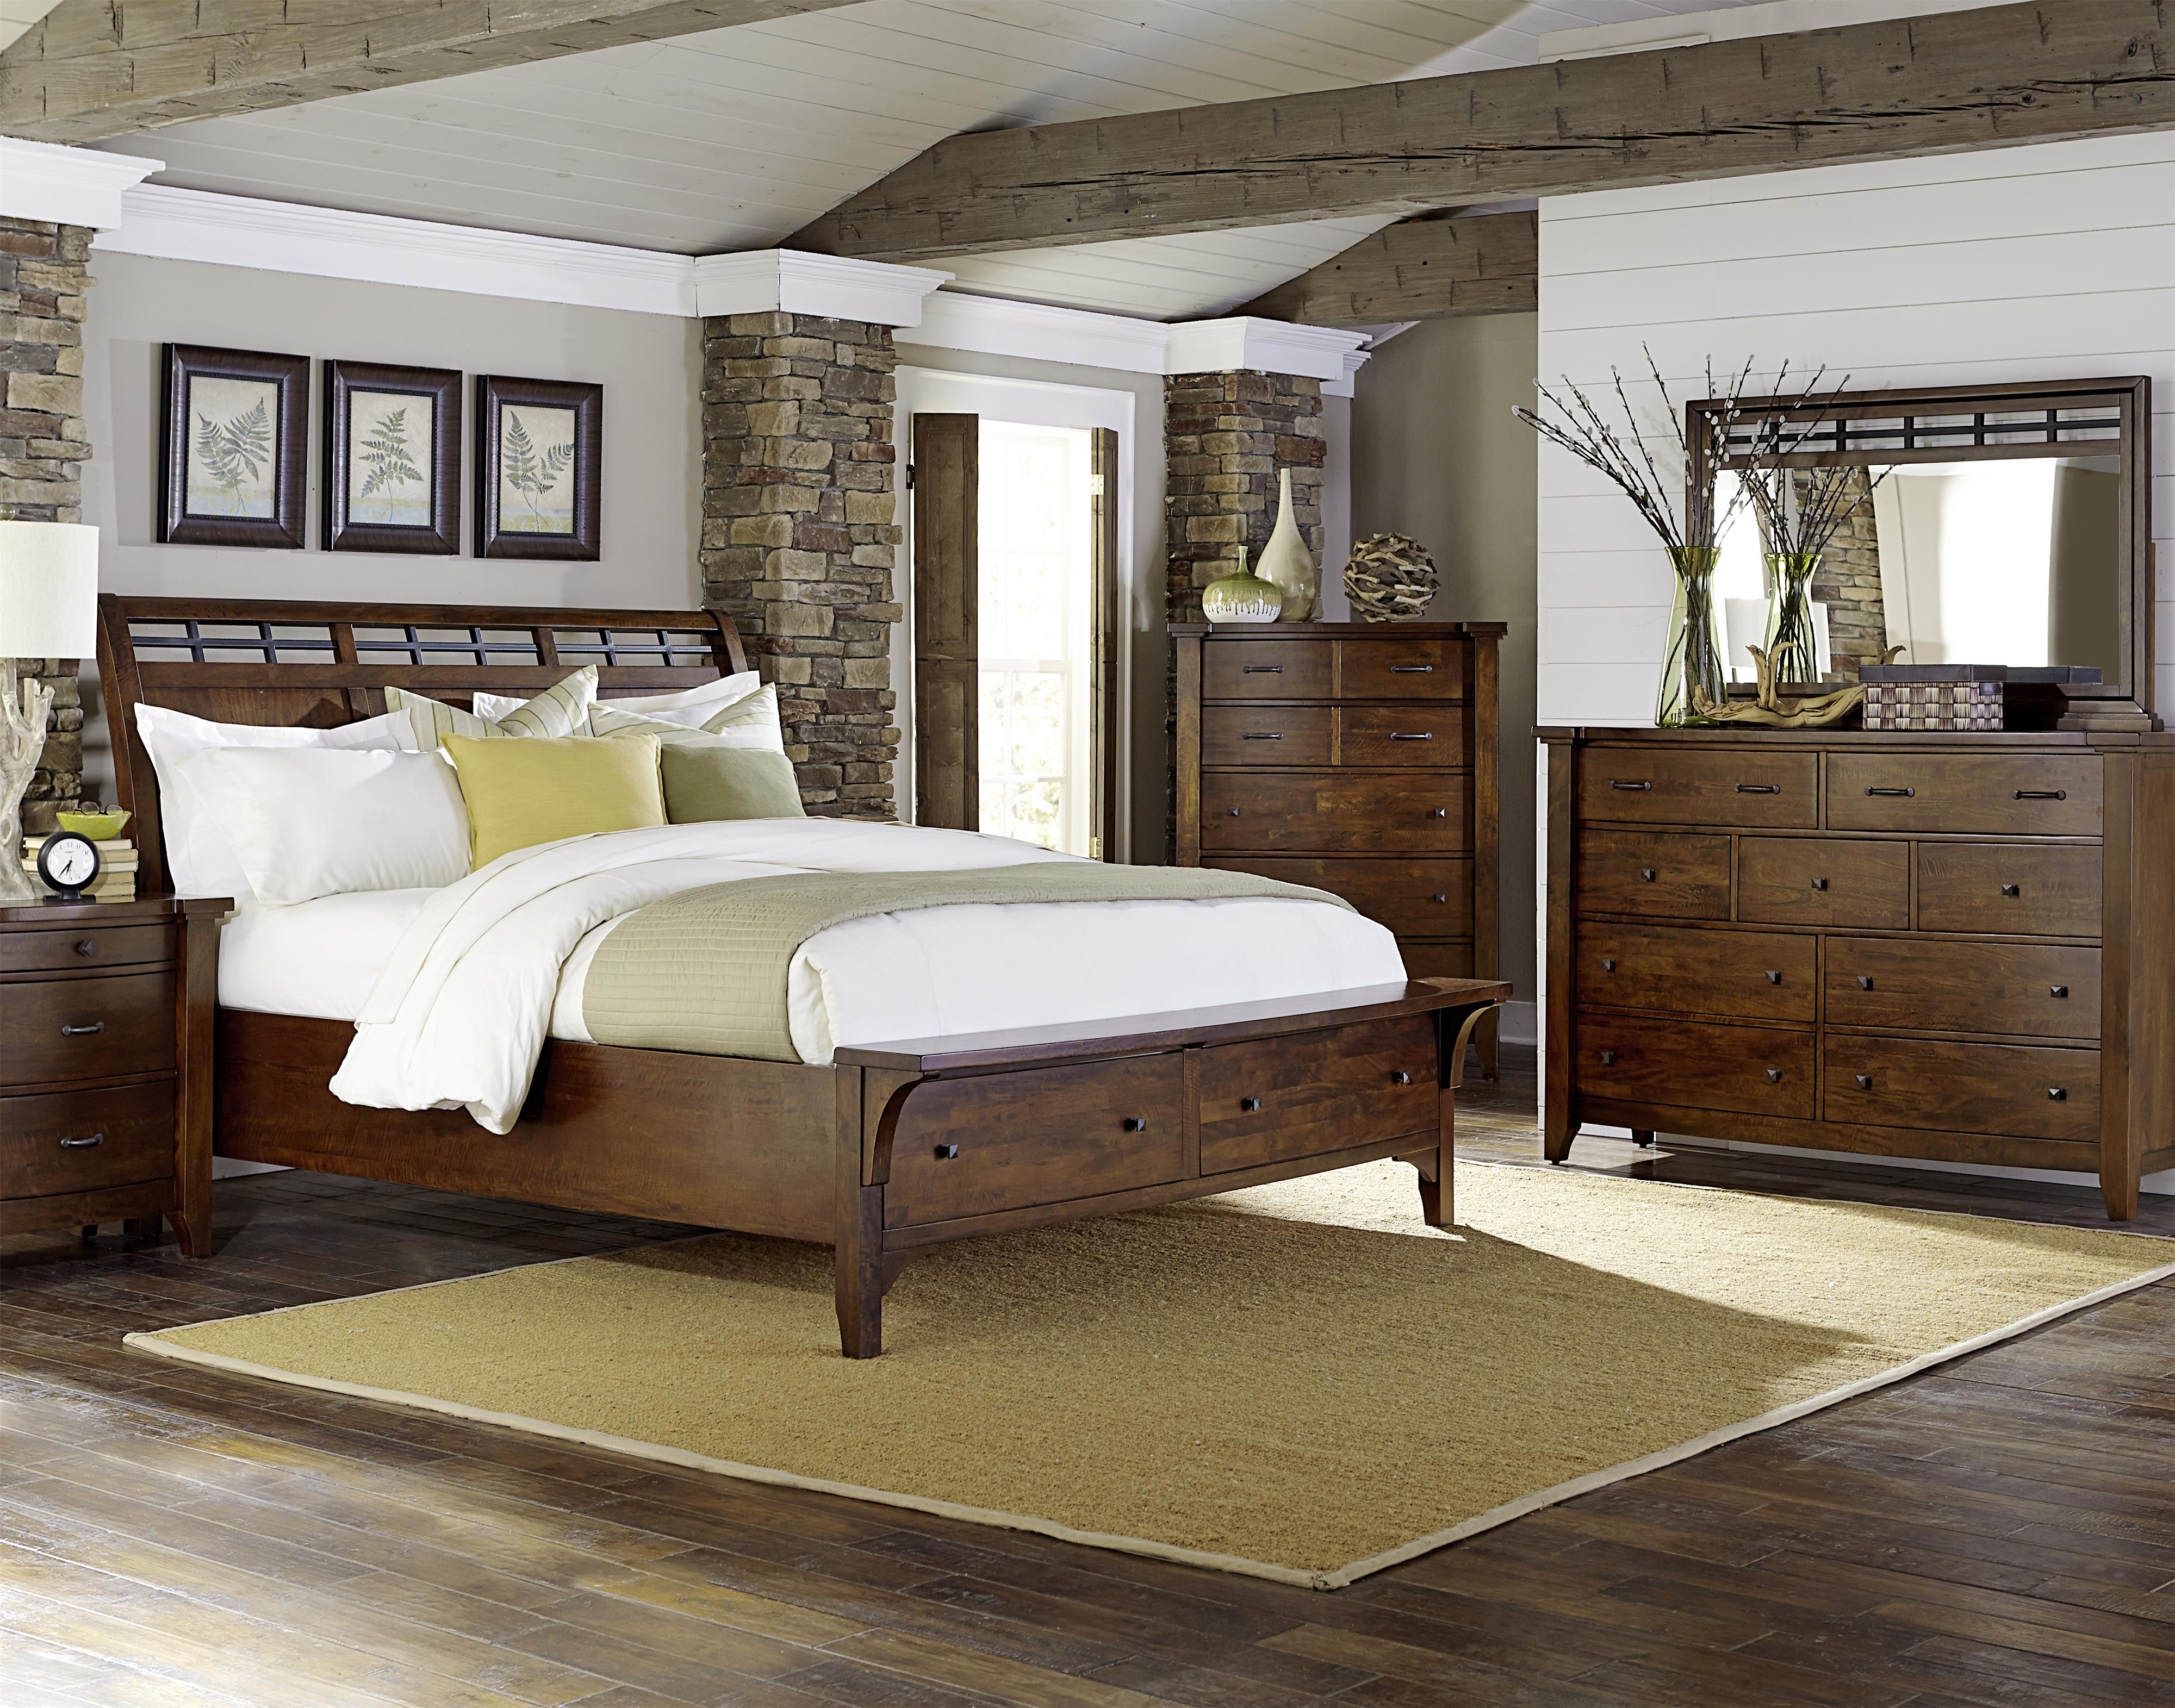 Napa Furniture Designs Whistler Retreat King Bedroom Group - Item Number: 70 K Bedroom Group 1